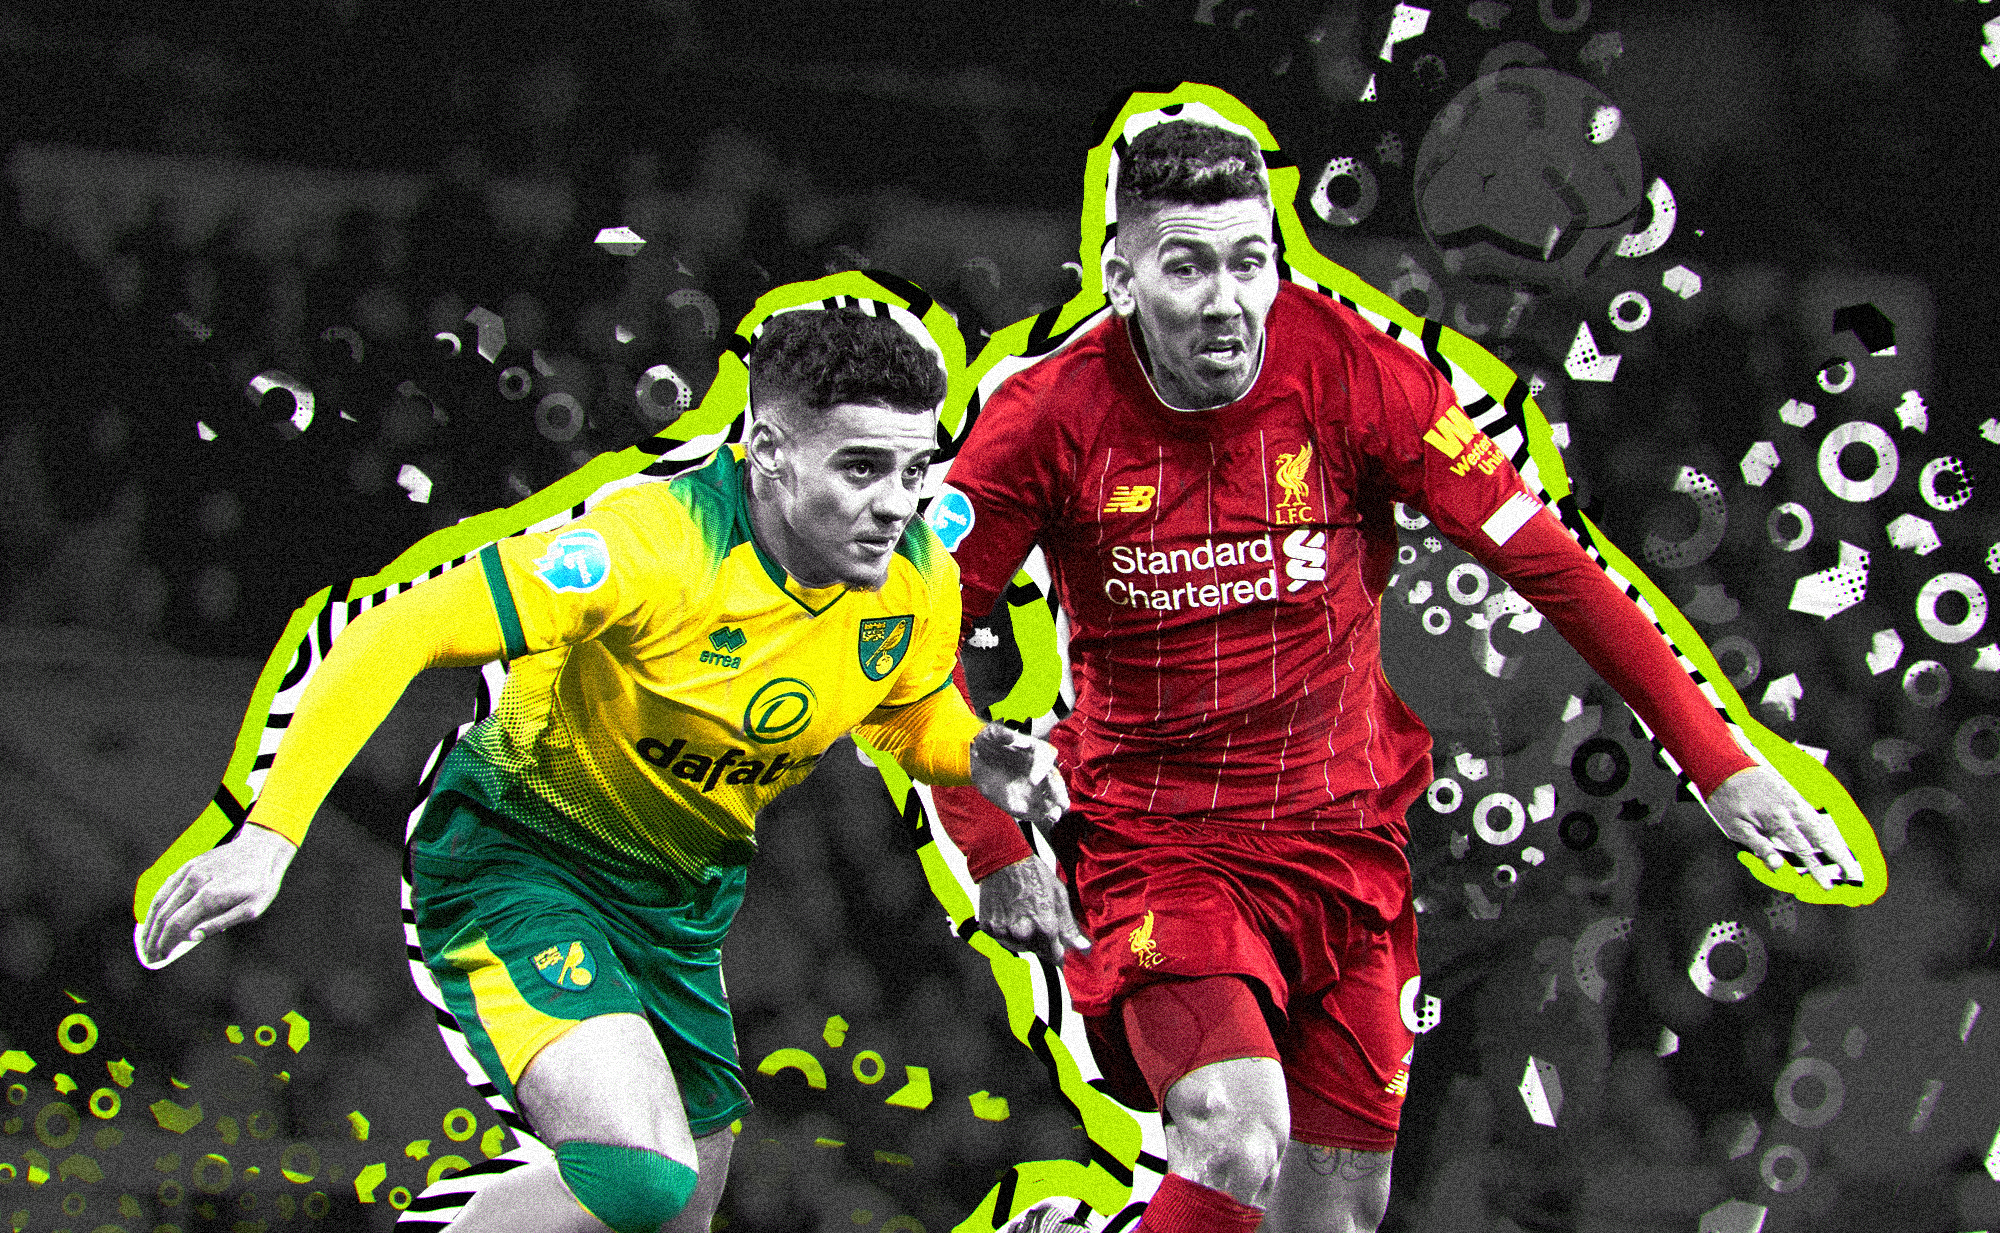 Roberto Firmino edging out a Norwich City defender for a ball. Their faces are in black and white while their kits are in color. The art style on the photo is pop/urban.